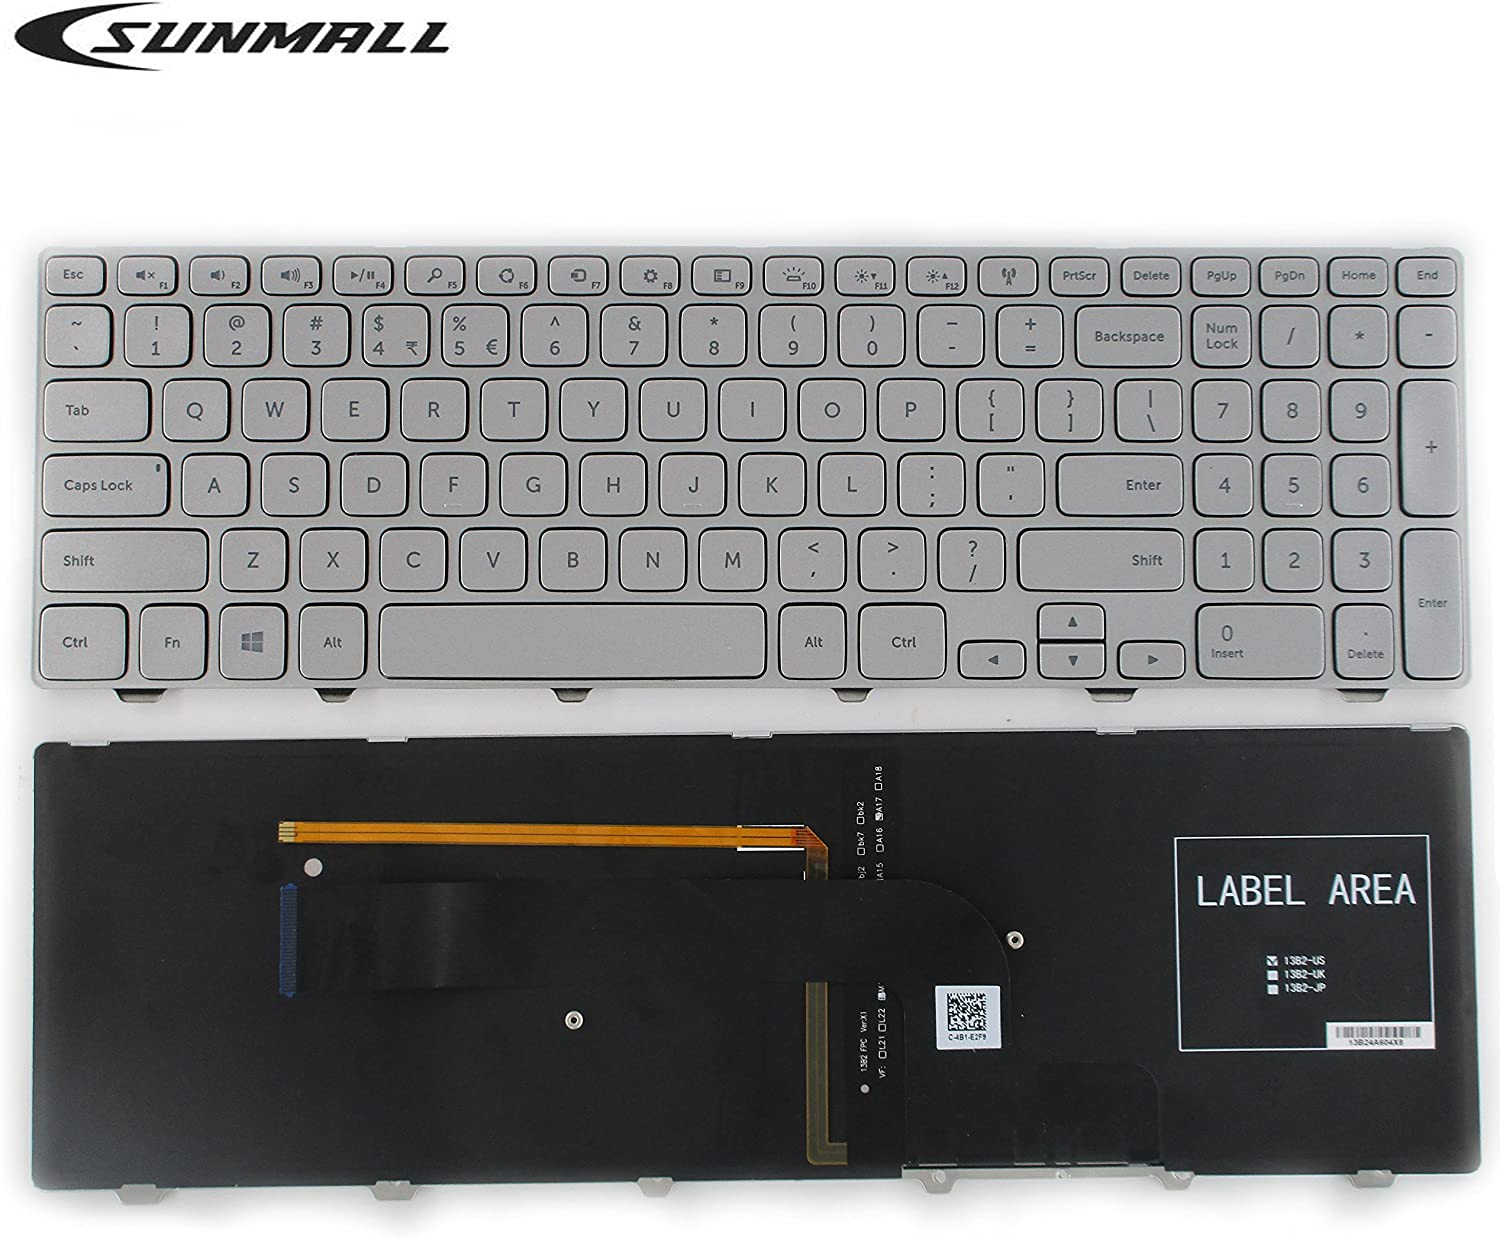 SUNMALL New Laptop Keyboard with Frame and Backlit Compatible with Dell Inspiron 15-7000 15-7537 Series Silver US Layout